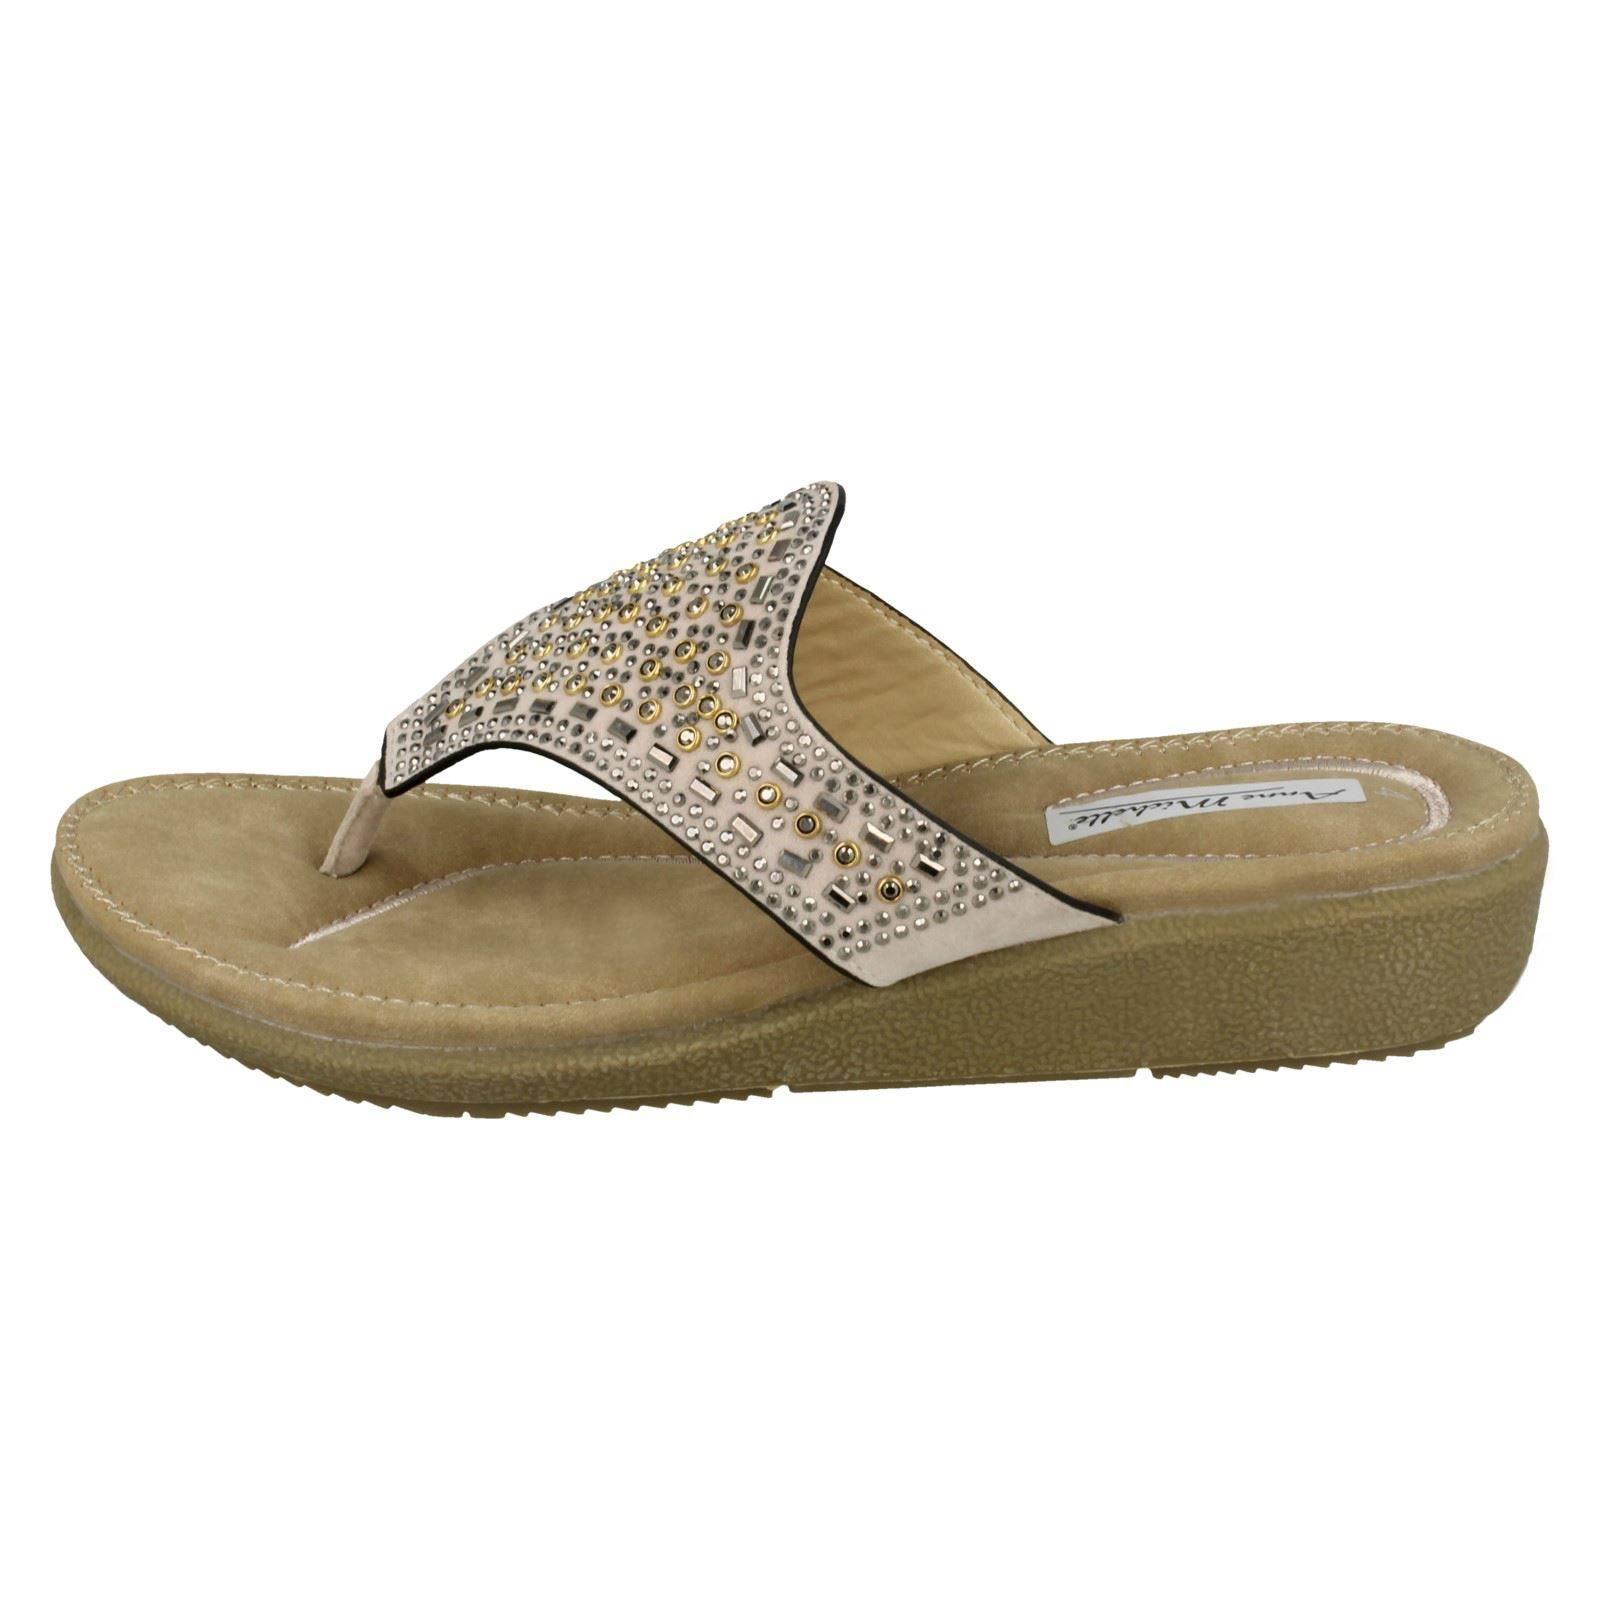 Damas Anne Michelle Embellecido Diamante Toe Post Sandalias